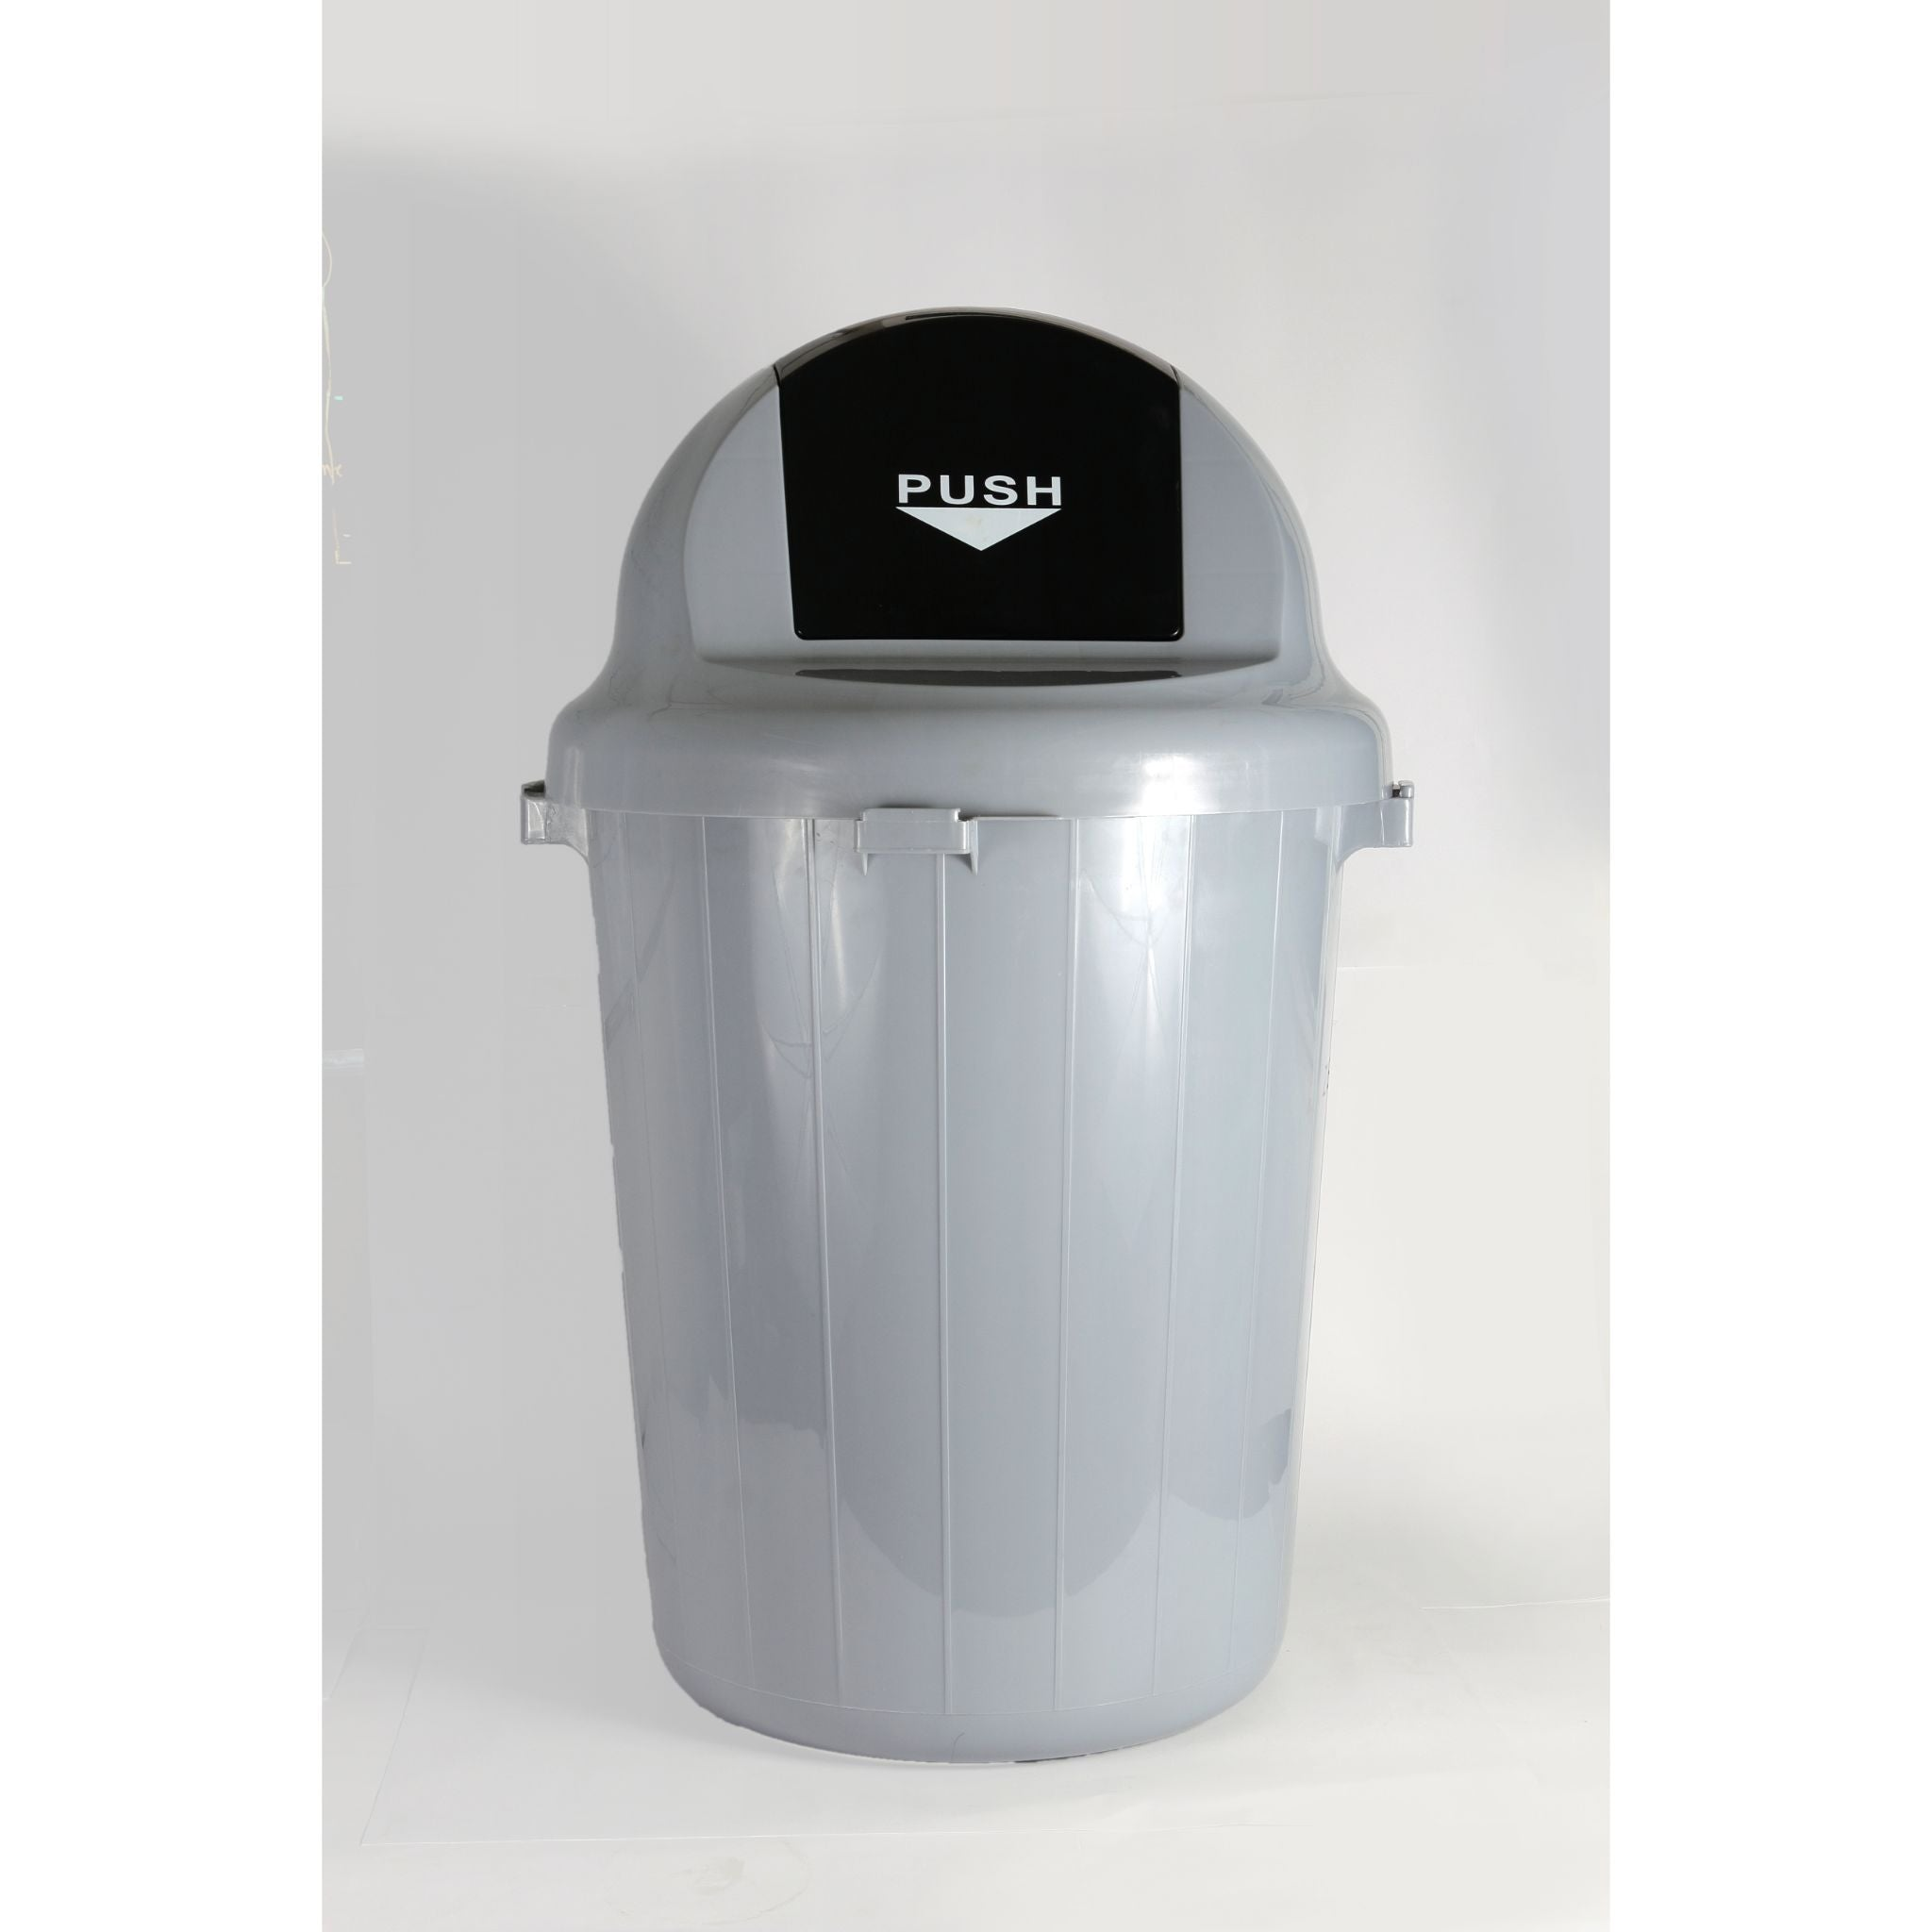 WASTE CONTAINER ROUND PUSH ADVANCED